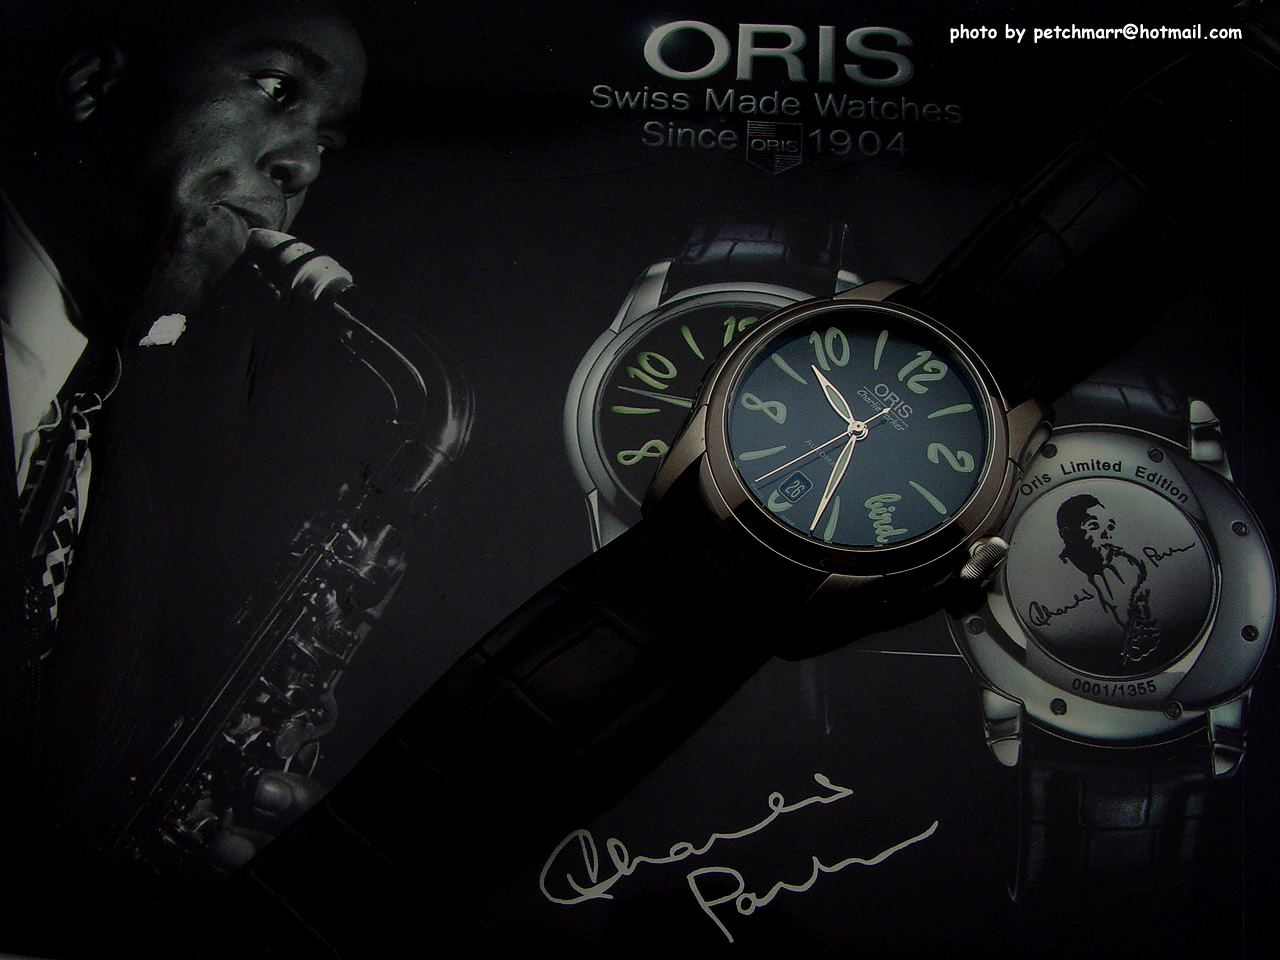 Oris watches Wallpaper